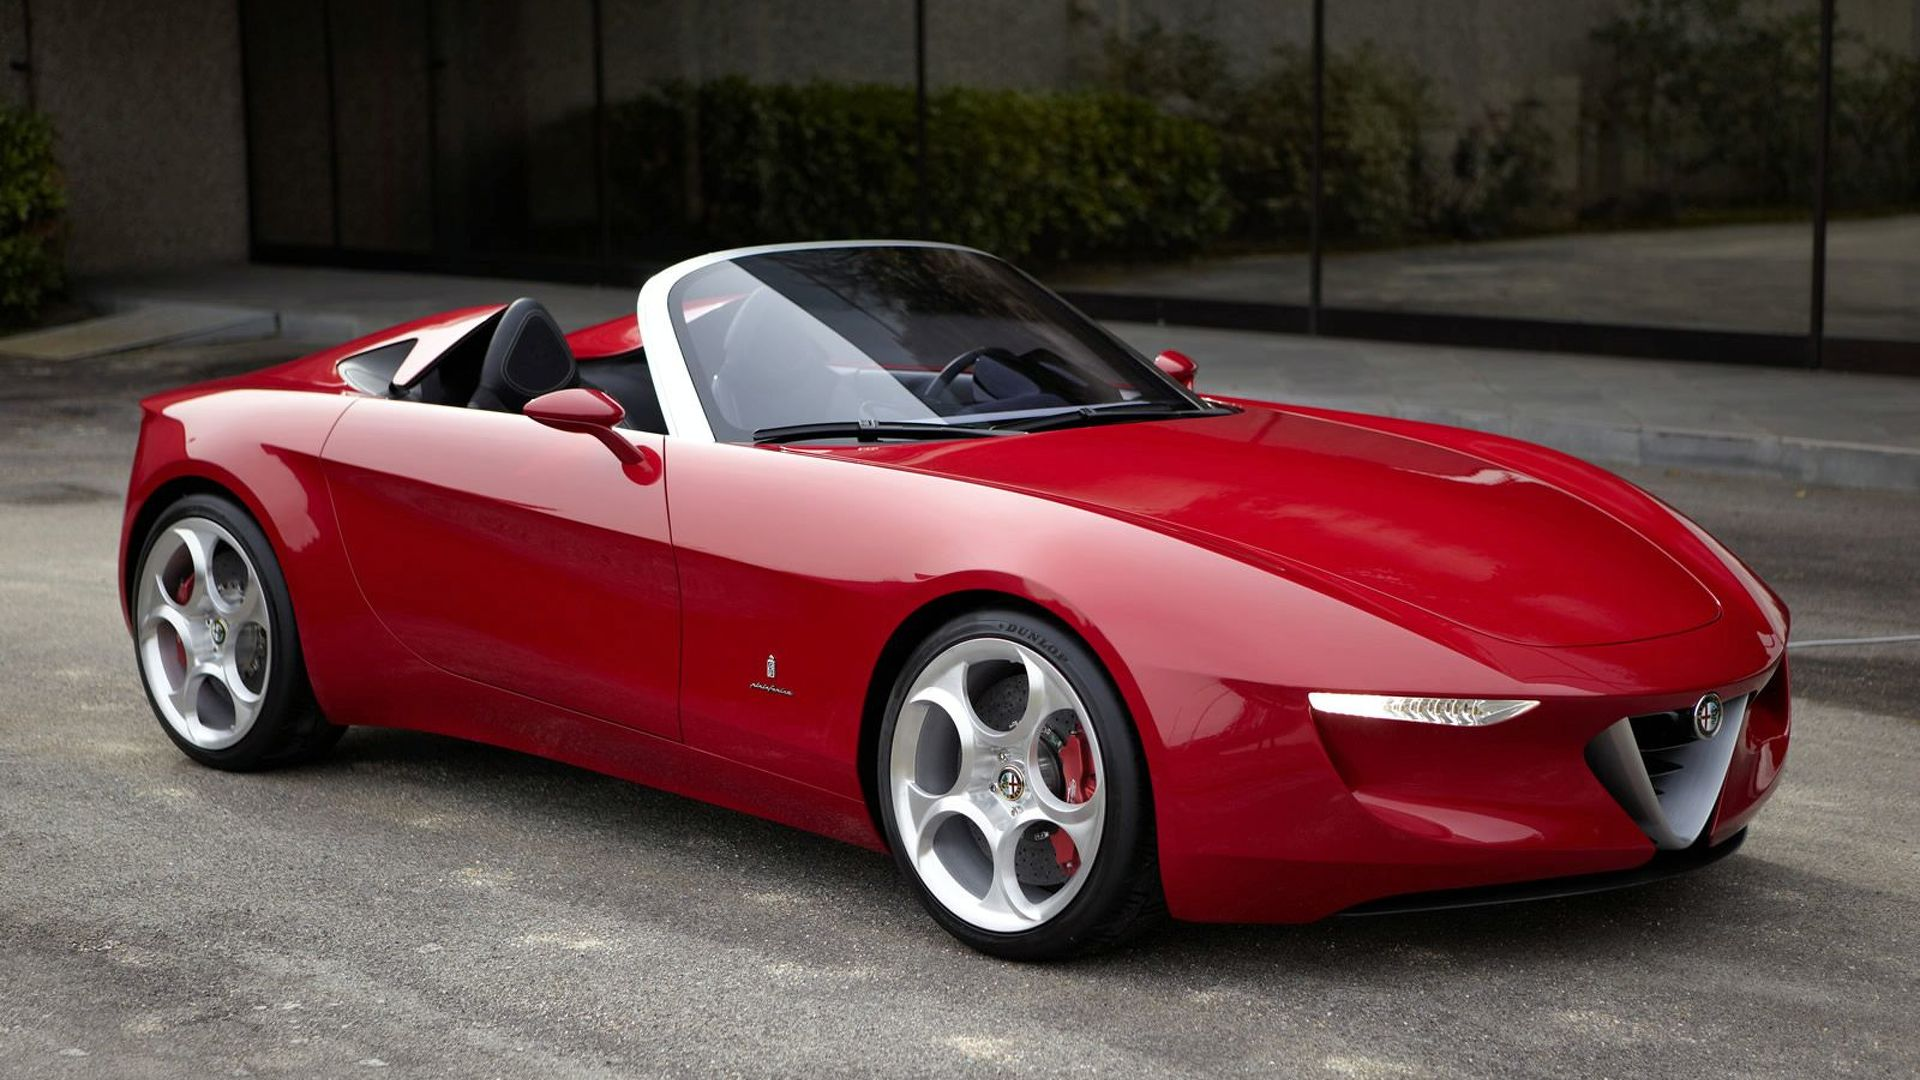 Alfa Romeo Spider in jeopardy, could become an Abarth or Fiat model instead - report